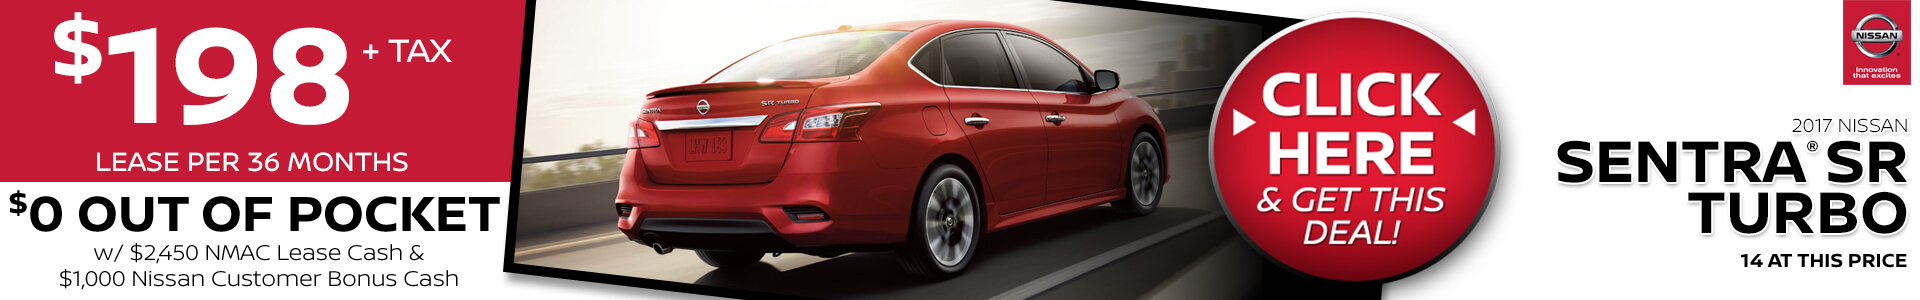 Sentra Purchase SRP